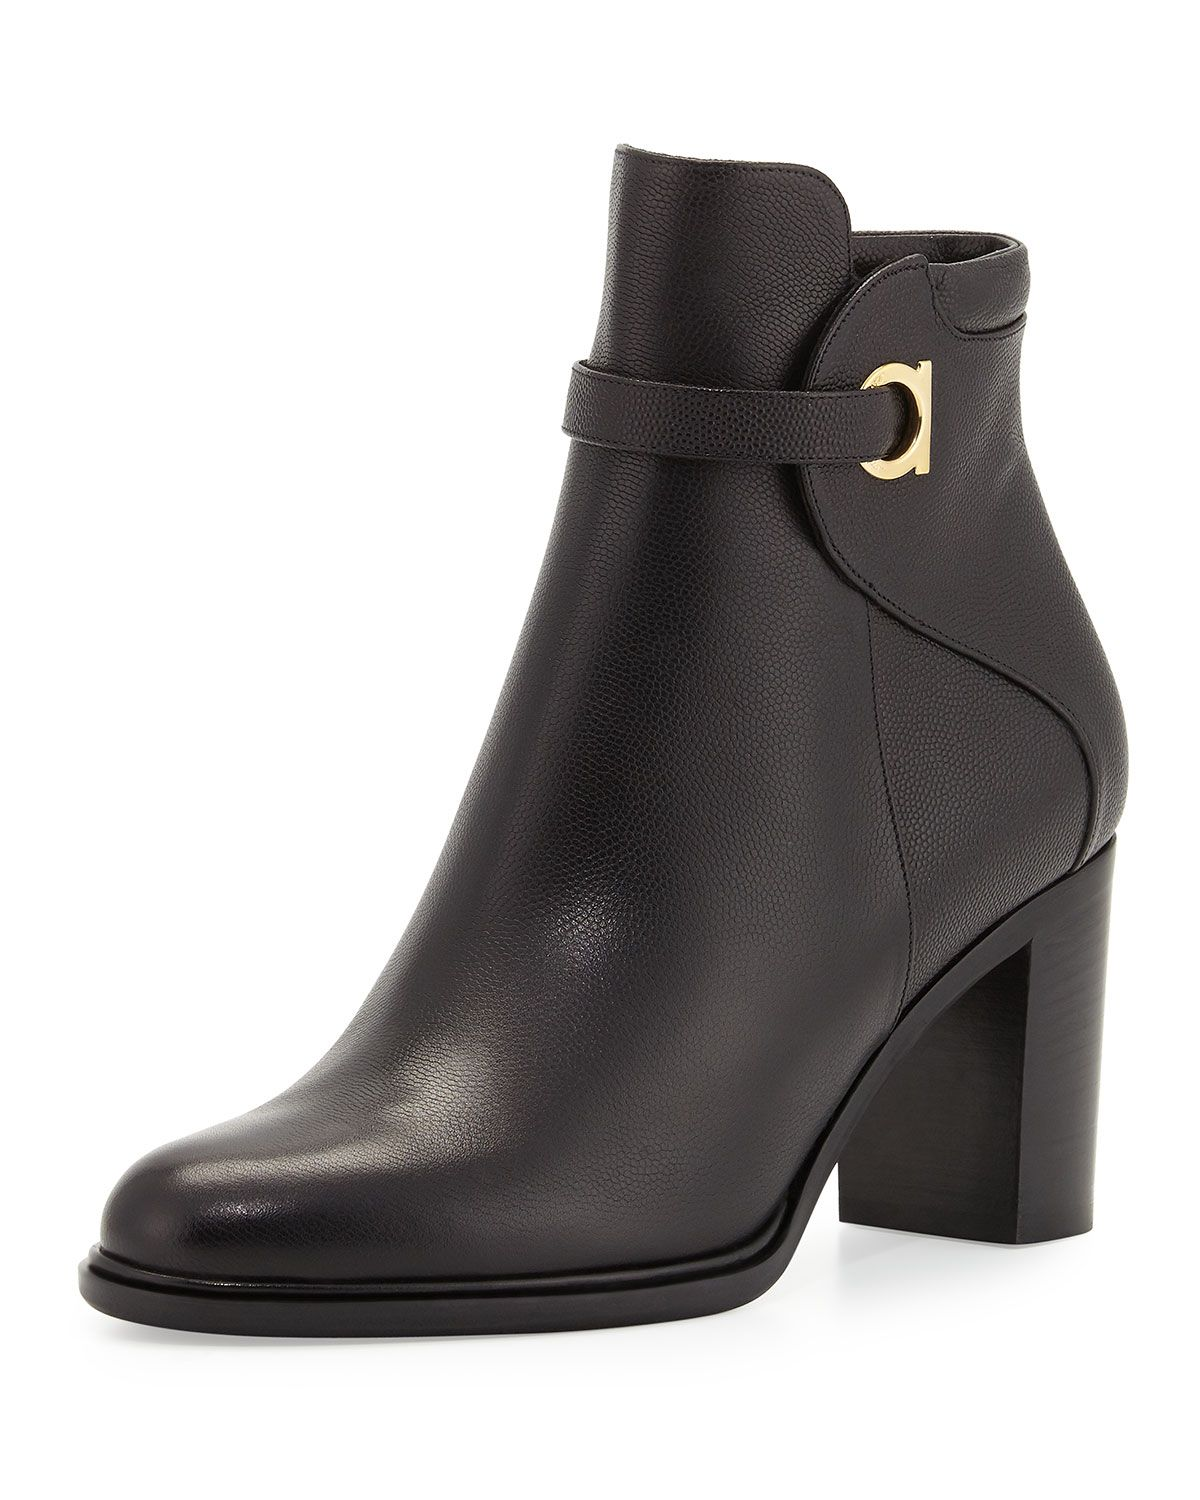 discount best prices hot sale for sale Salvatore Ferragamo Florian Leather Boots cheap sale ebay outlet store cheap online QloU0B8